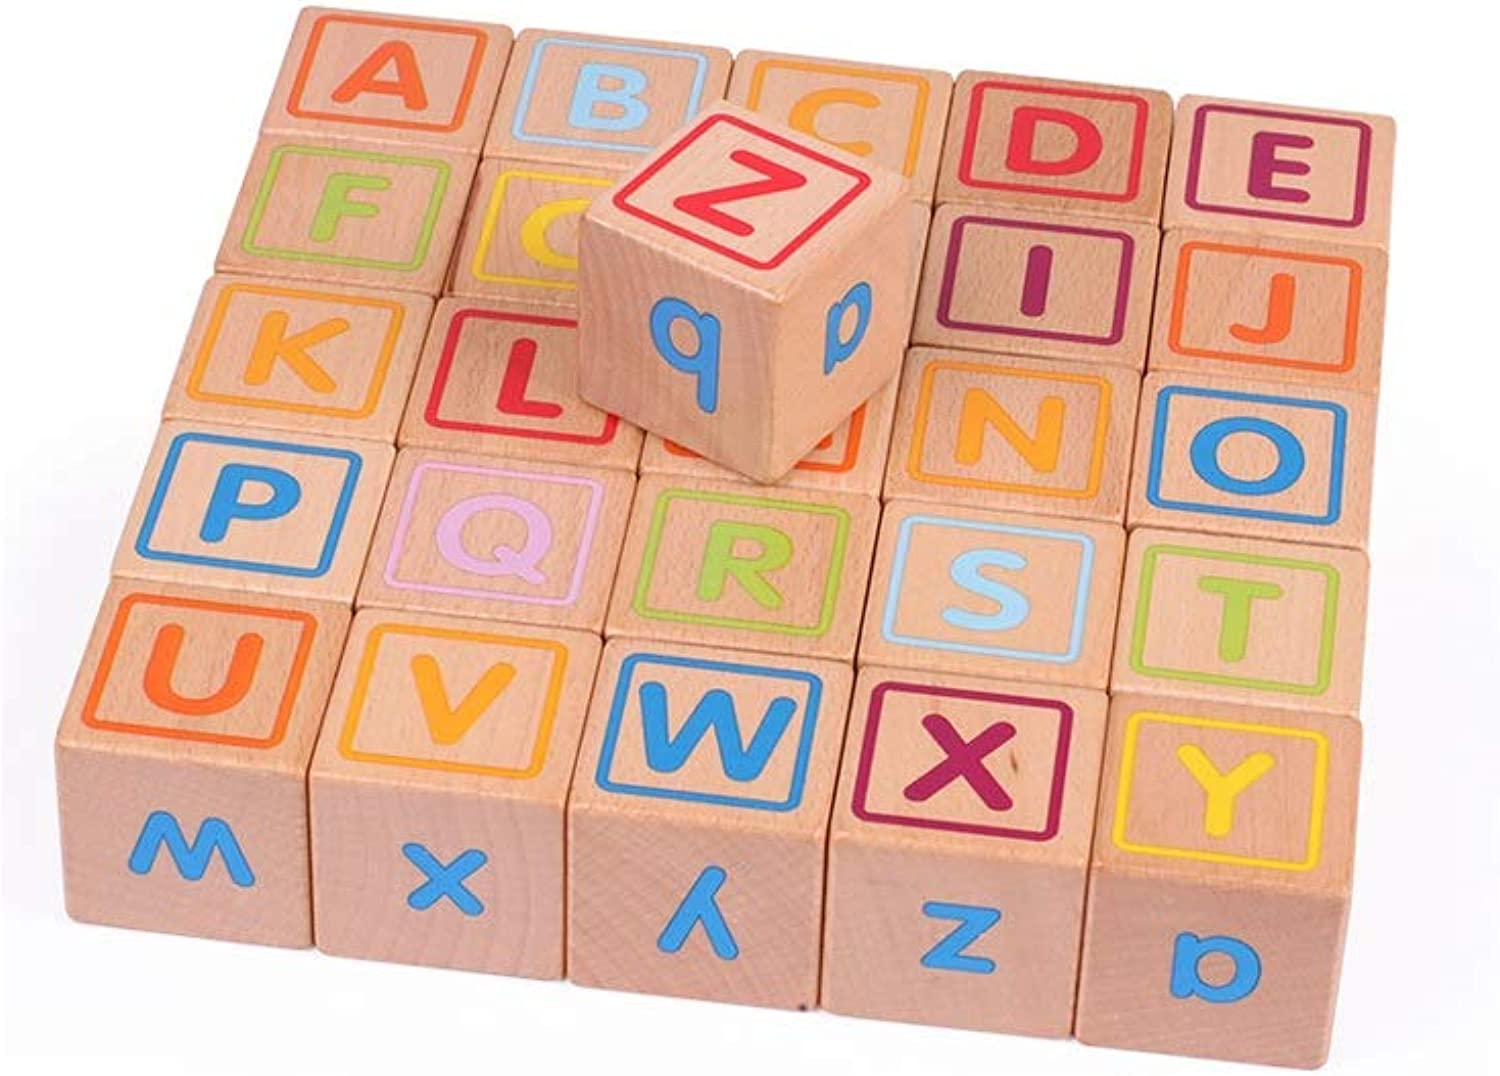 Alapet  ldren's Wooden Combinazioni Blocks Personality Fashion Sixsided Design Bloc  in legno Parent ld Interazione Early Education Puzzle Building Blocks Boys and Girls Logic Thinking Training to to to